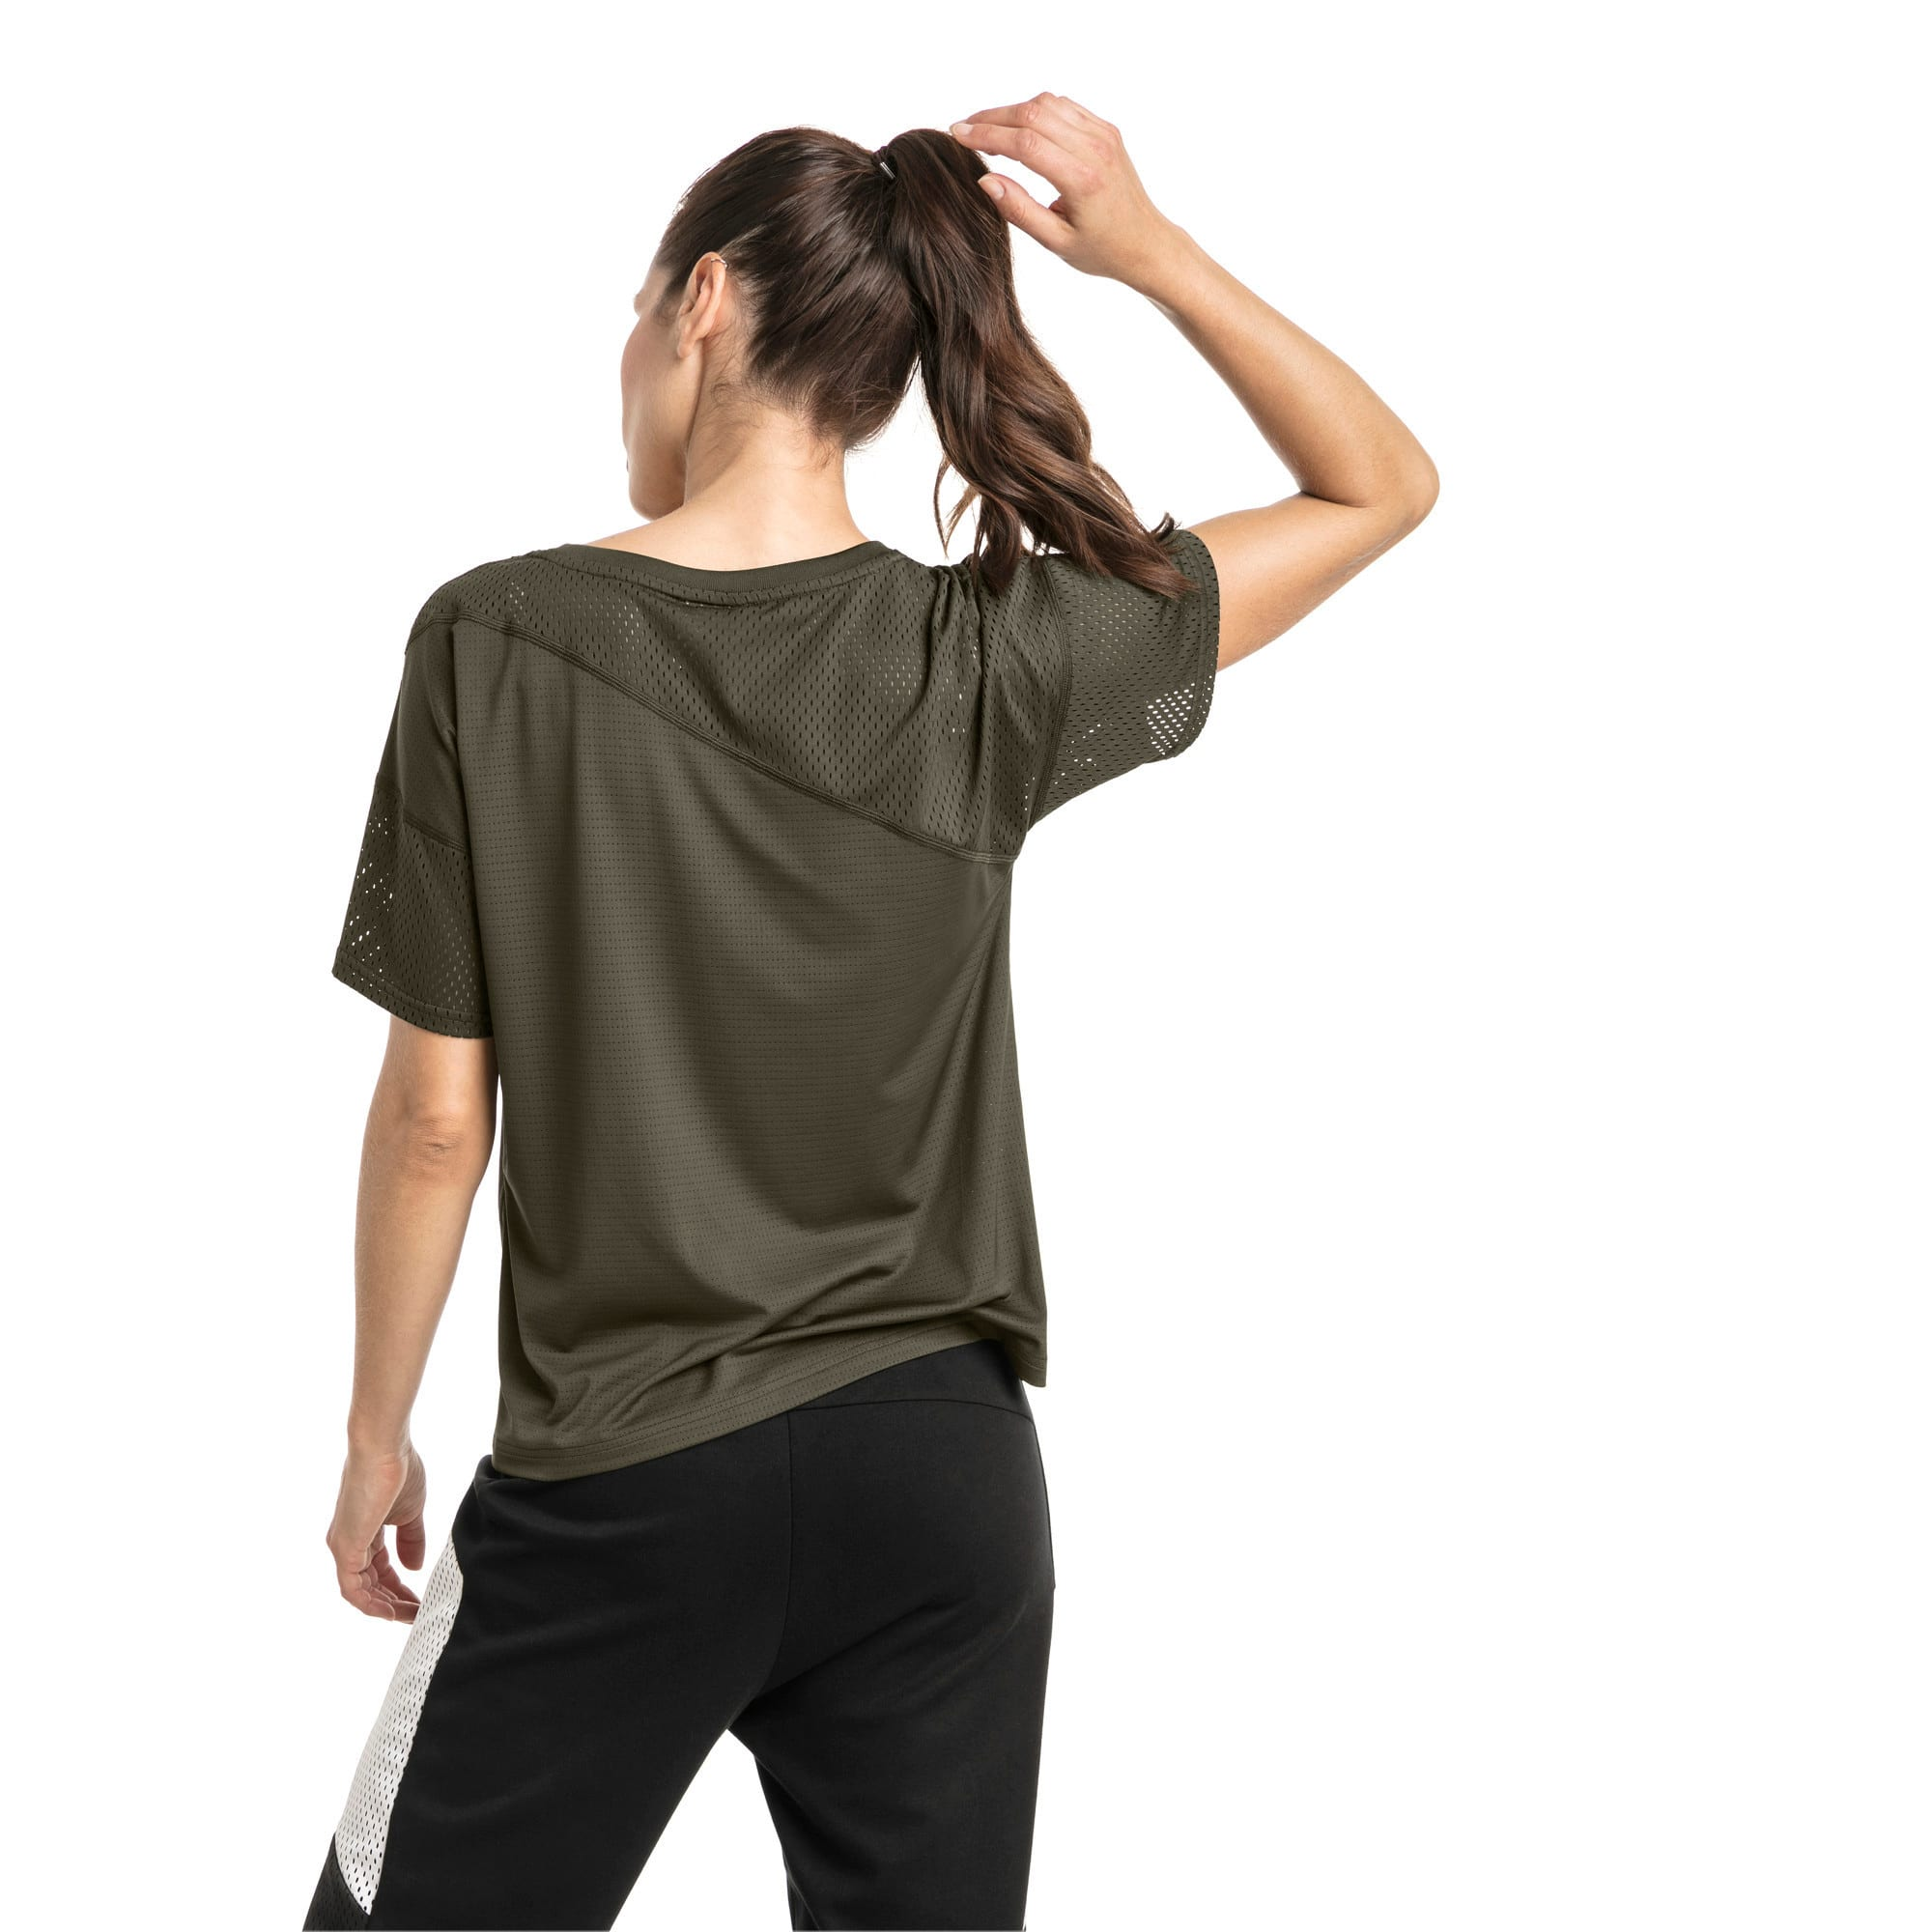 Thumbnail 2 of A.C.E. Mesh Blocked Women's Training Top, Forest Night, medium-IND